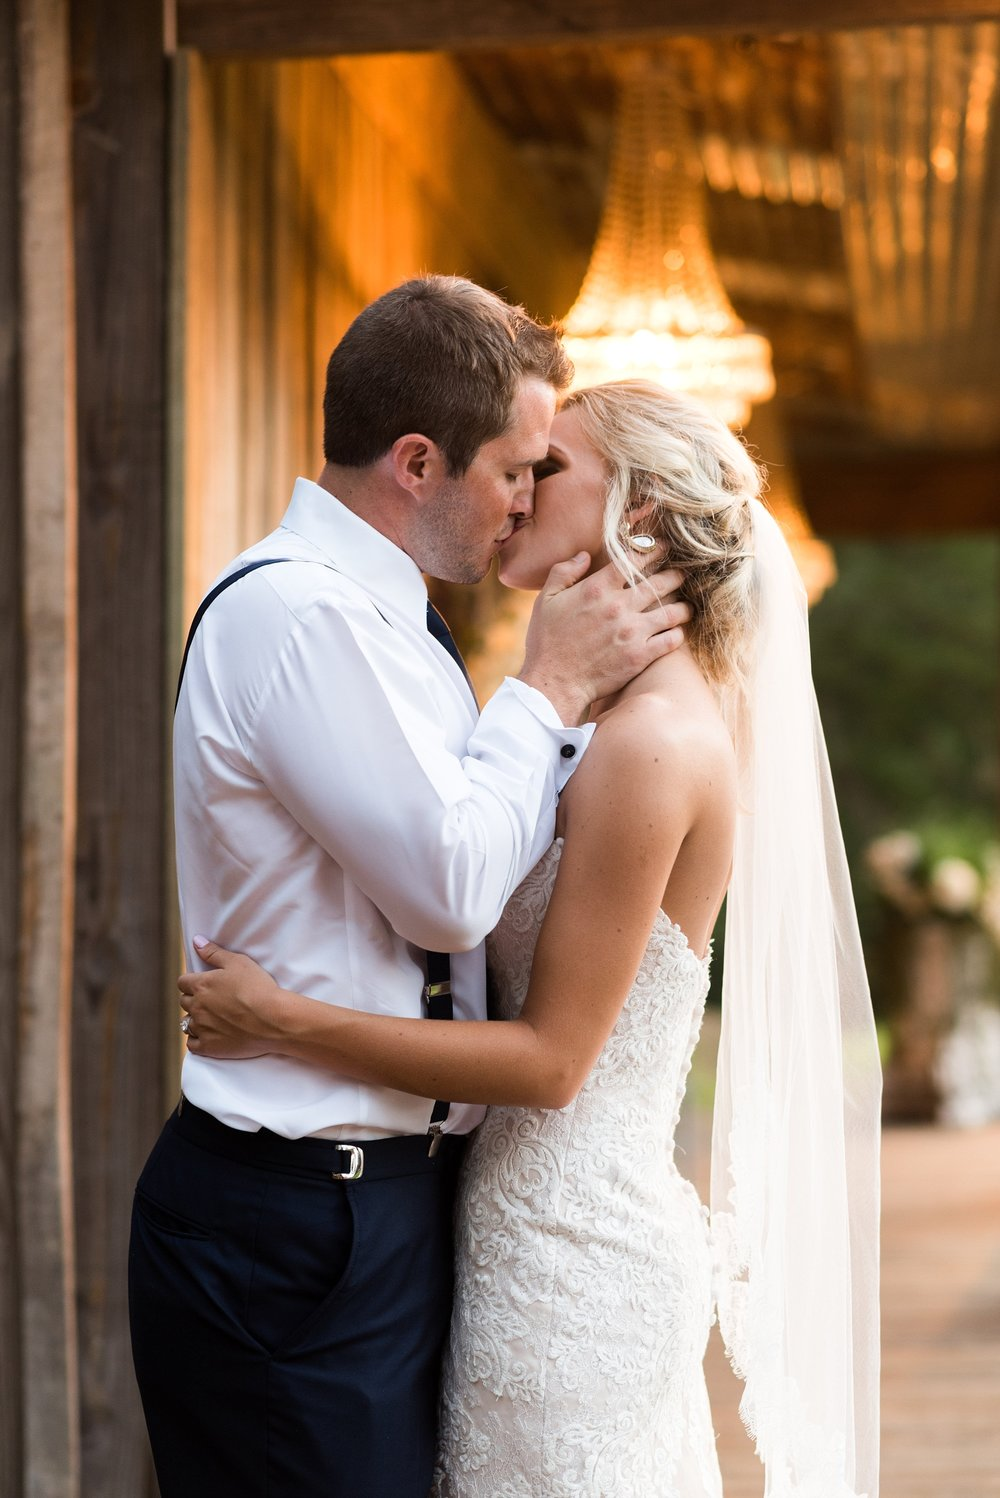 CORY & HALEY | FULLER WEDDING | CREEKSIDE MEADOWS -Laura Wilkerson Photography